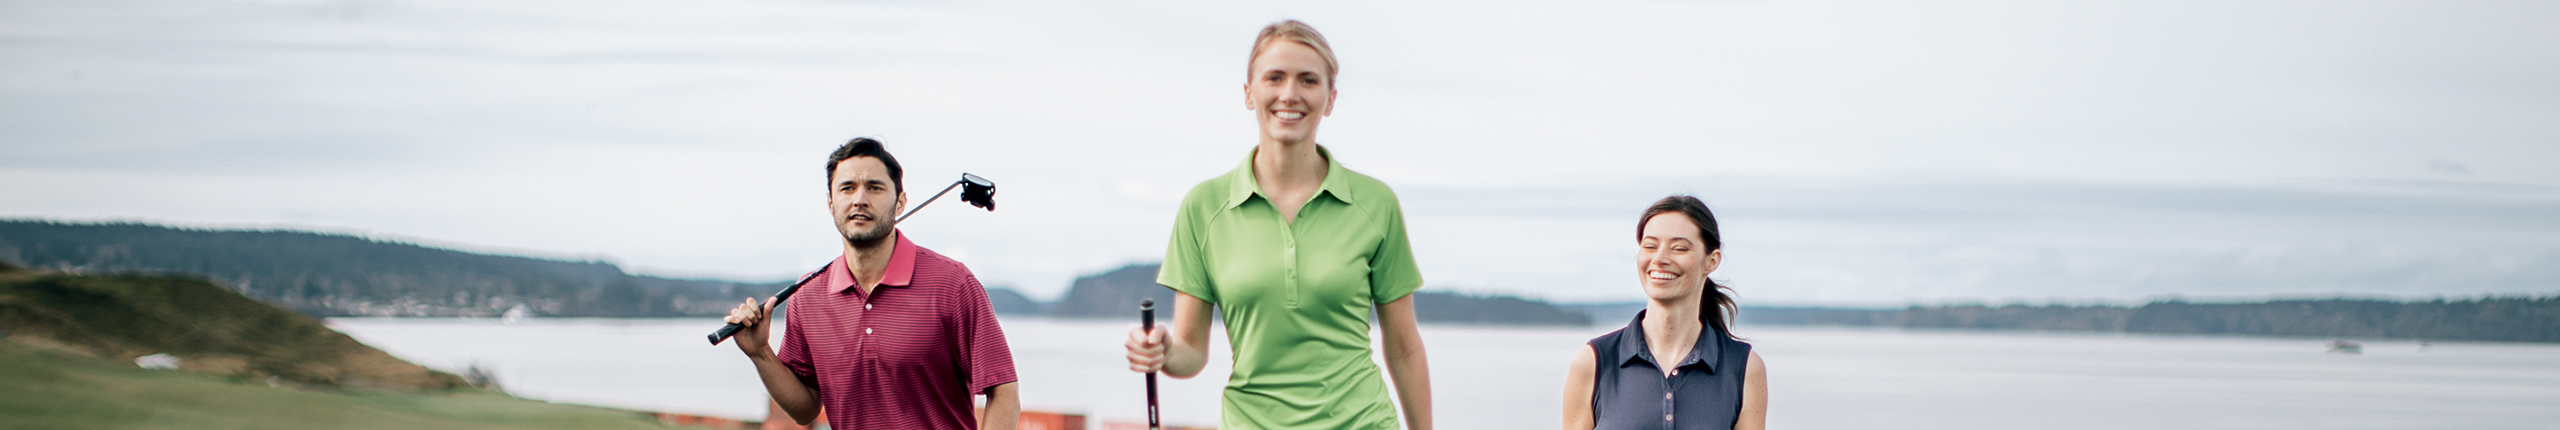 proshop-ladies-golf.jpg